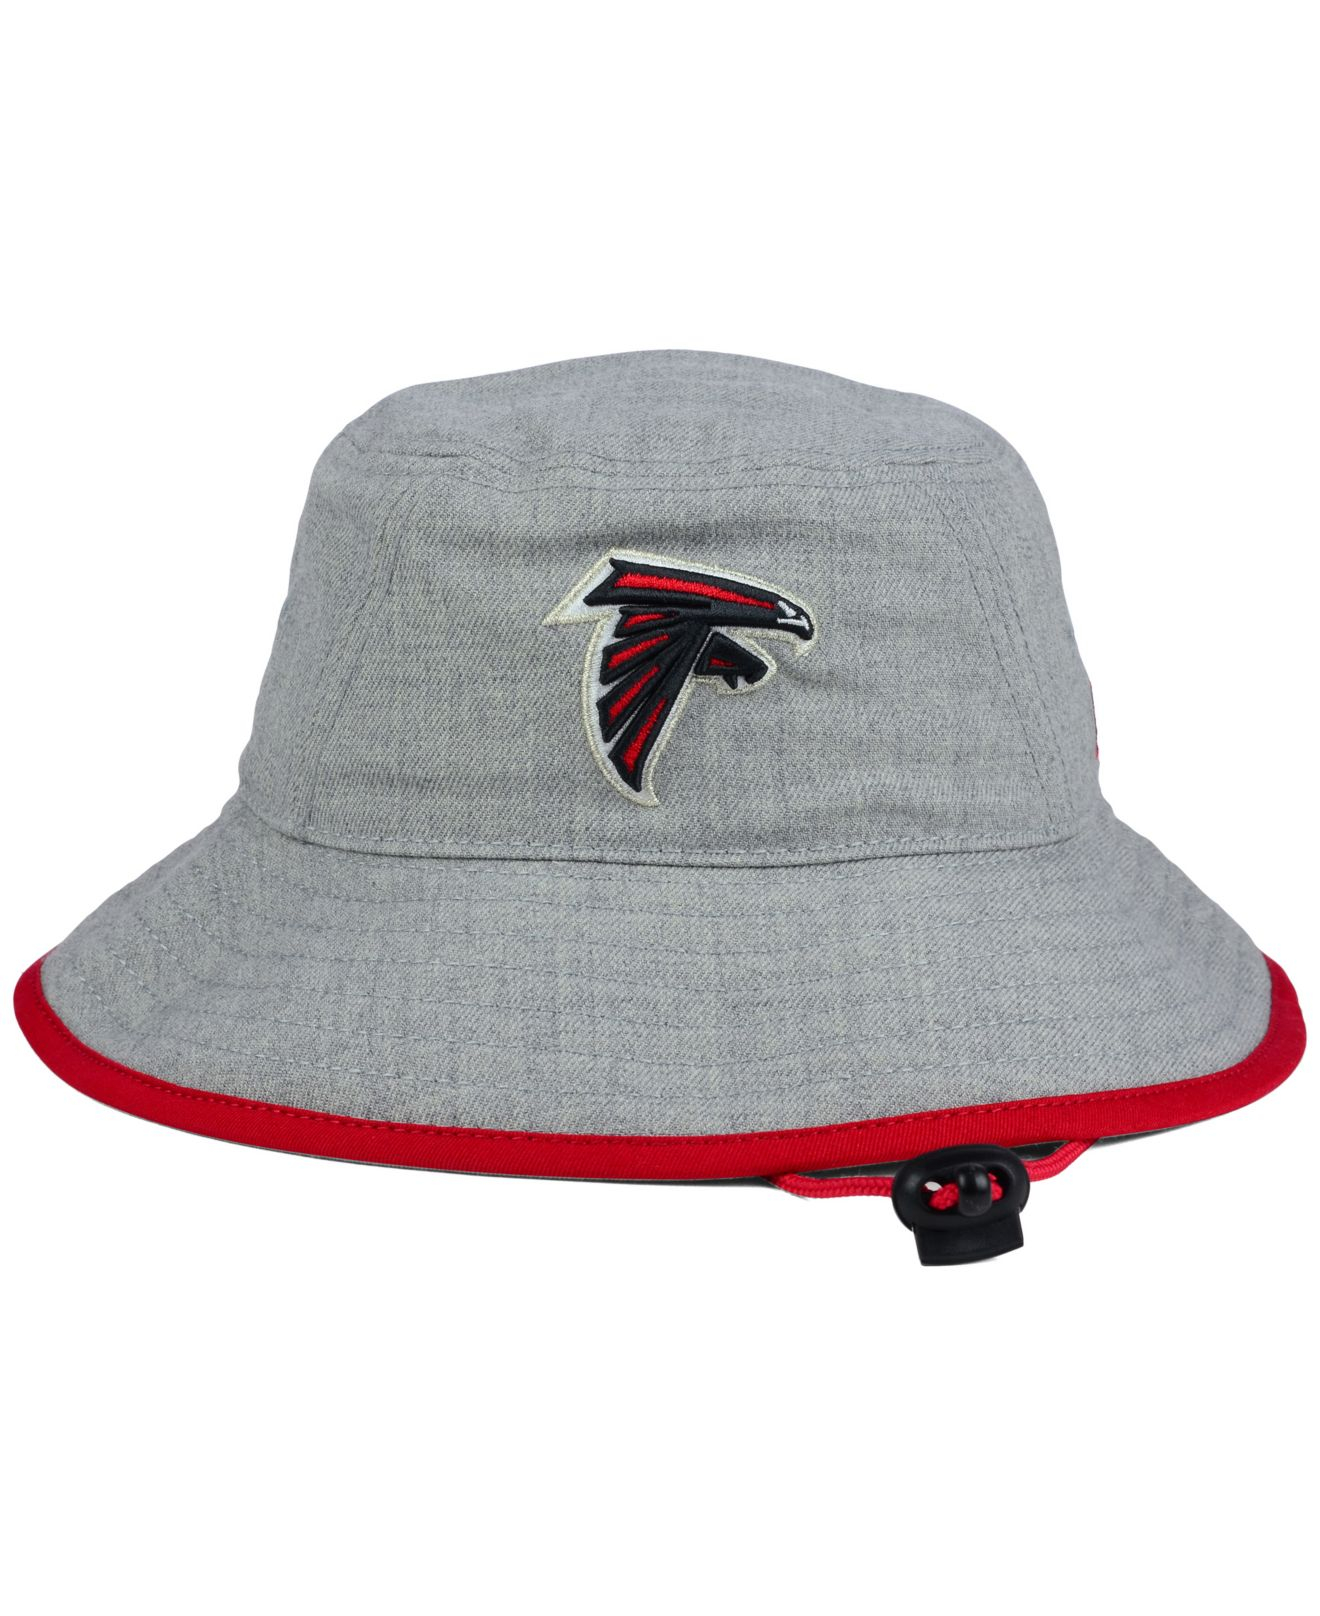 90a1452a01d ... norway spain lyst ktz atlanta falcons nfl heather gray bucket hat in  for men 2a687 a1027